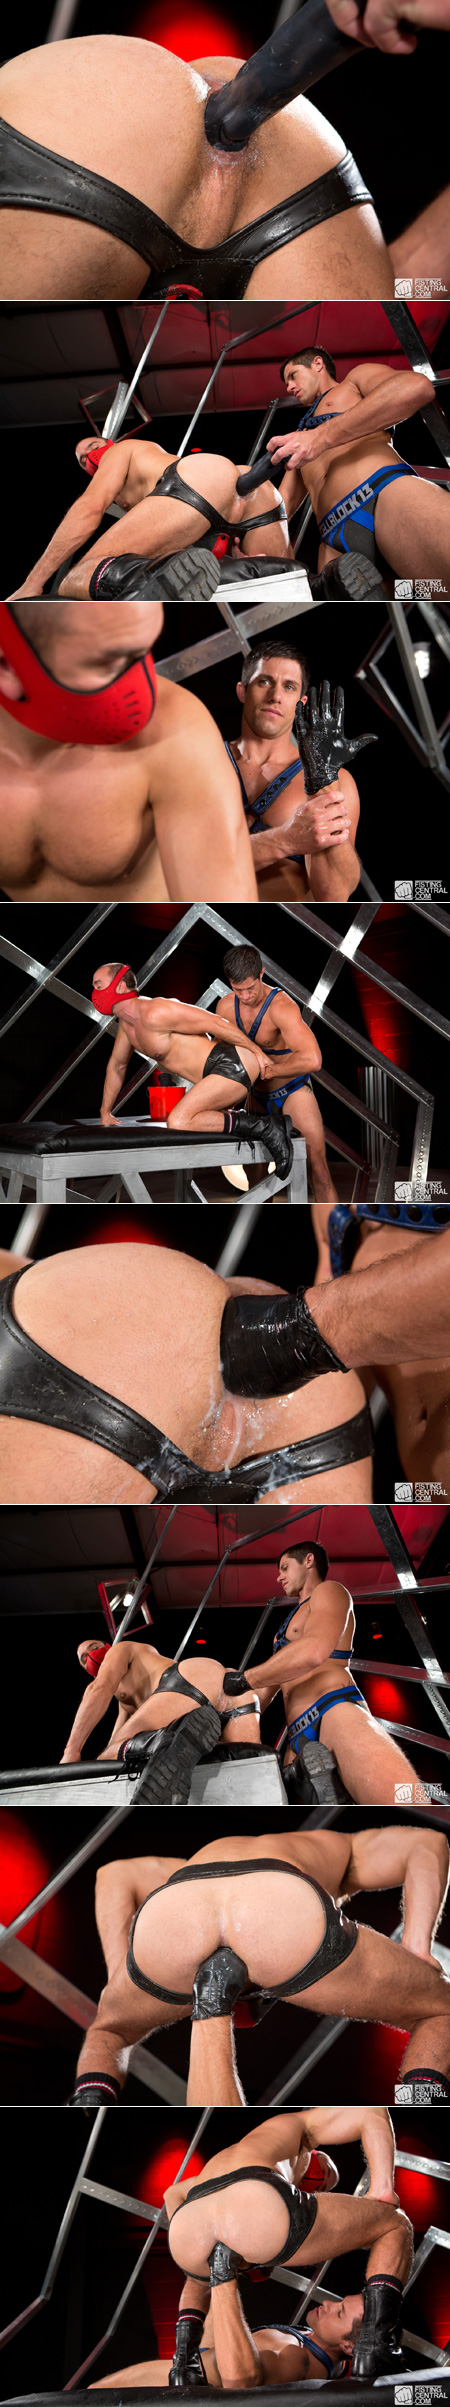 Man in a jockstrap and leather boots fisting another man on all fours on an elevated table.